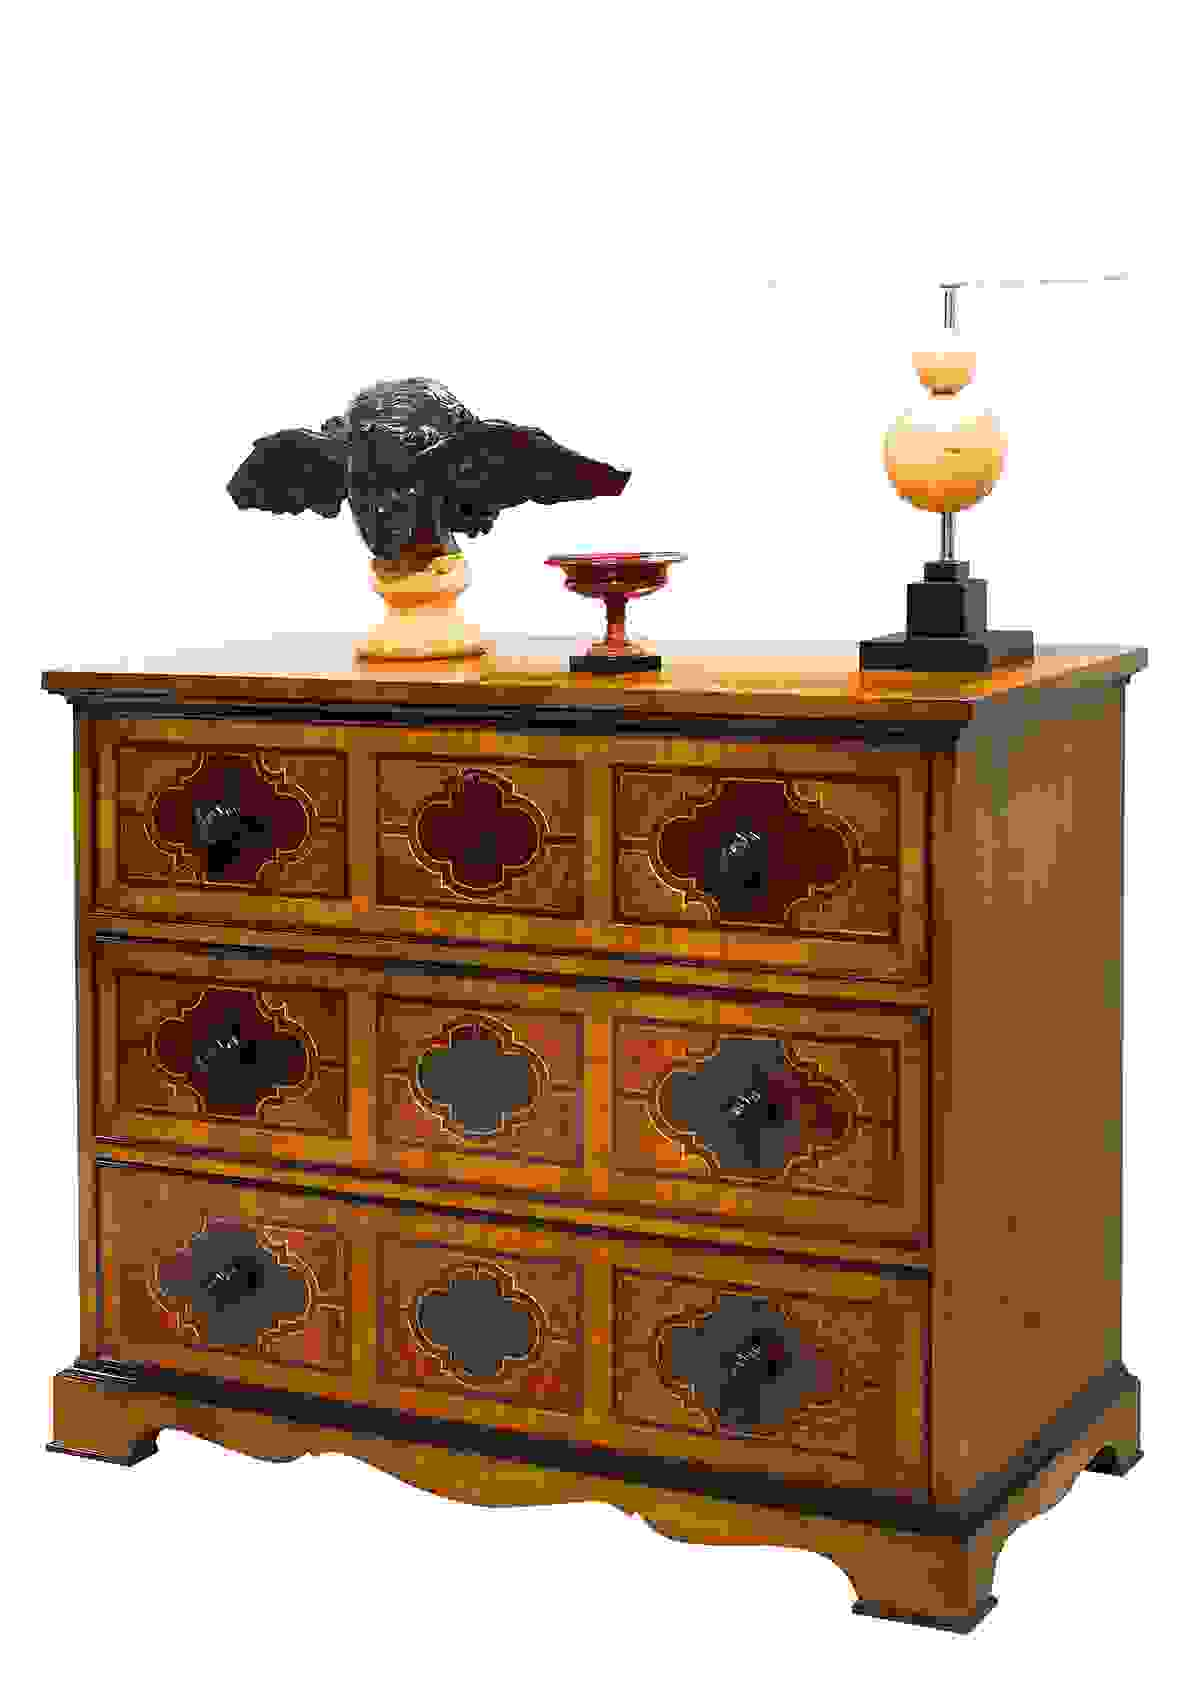 acanto-betesa-chest-of-drawers.jpg